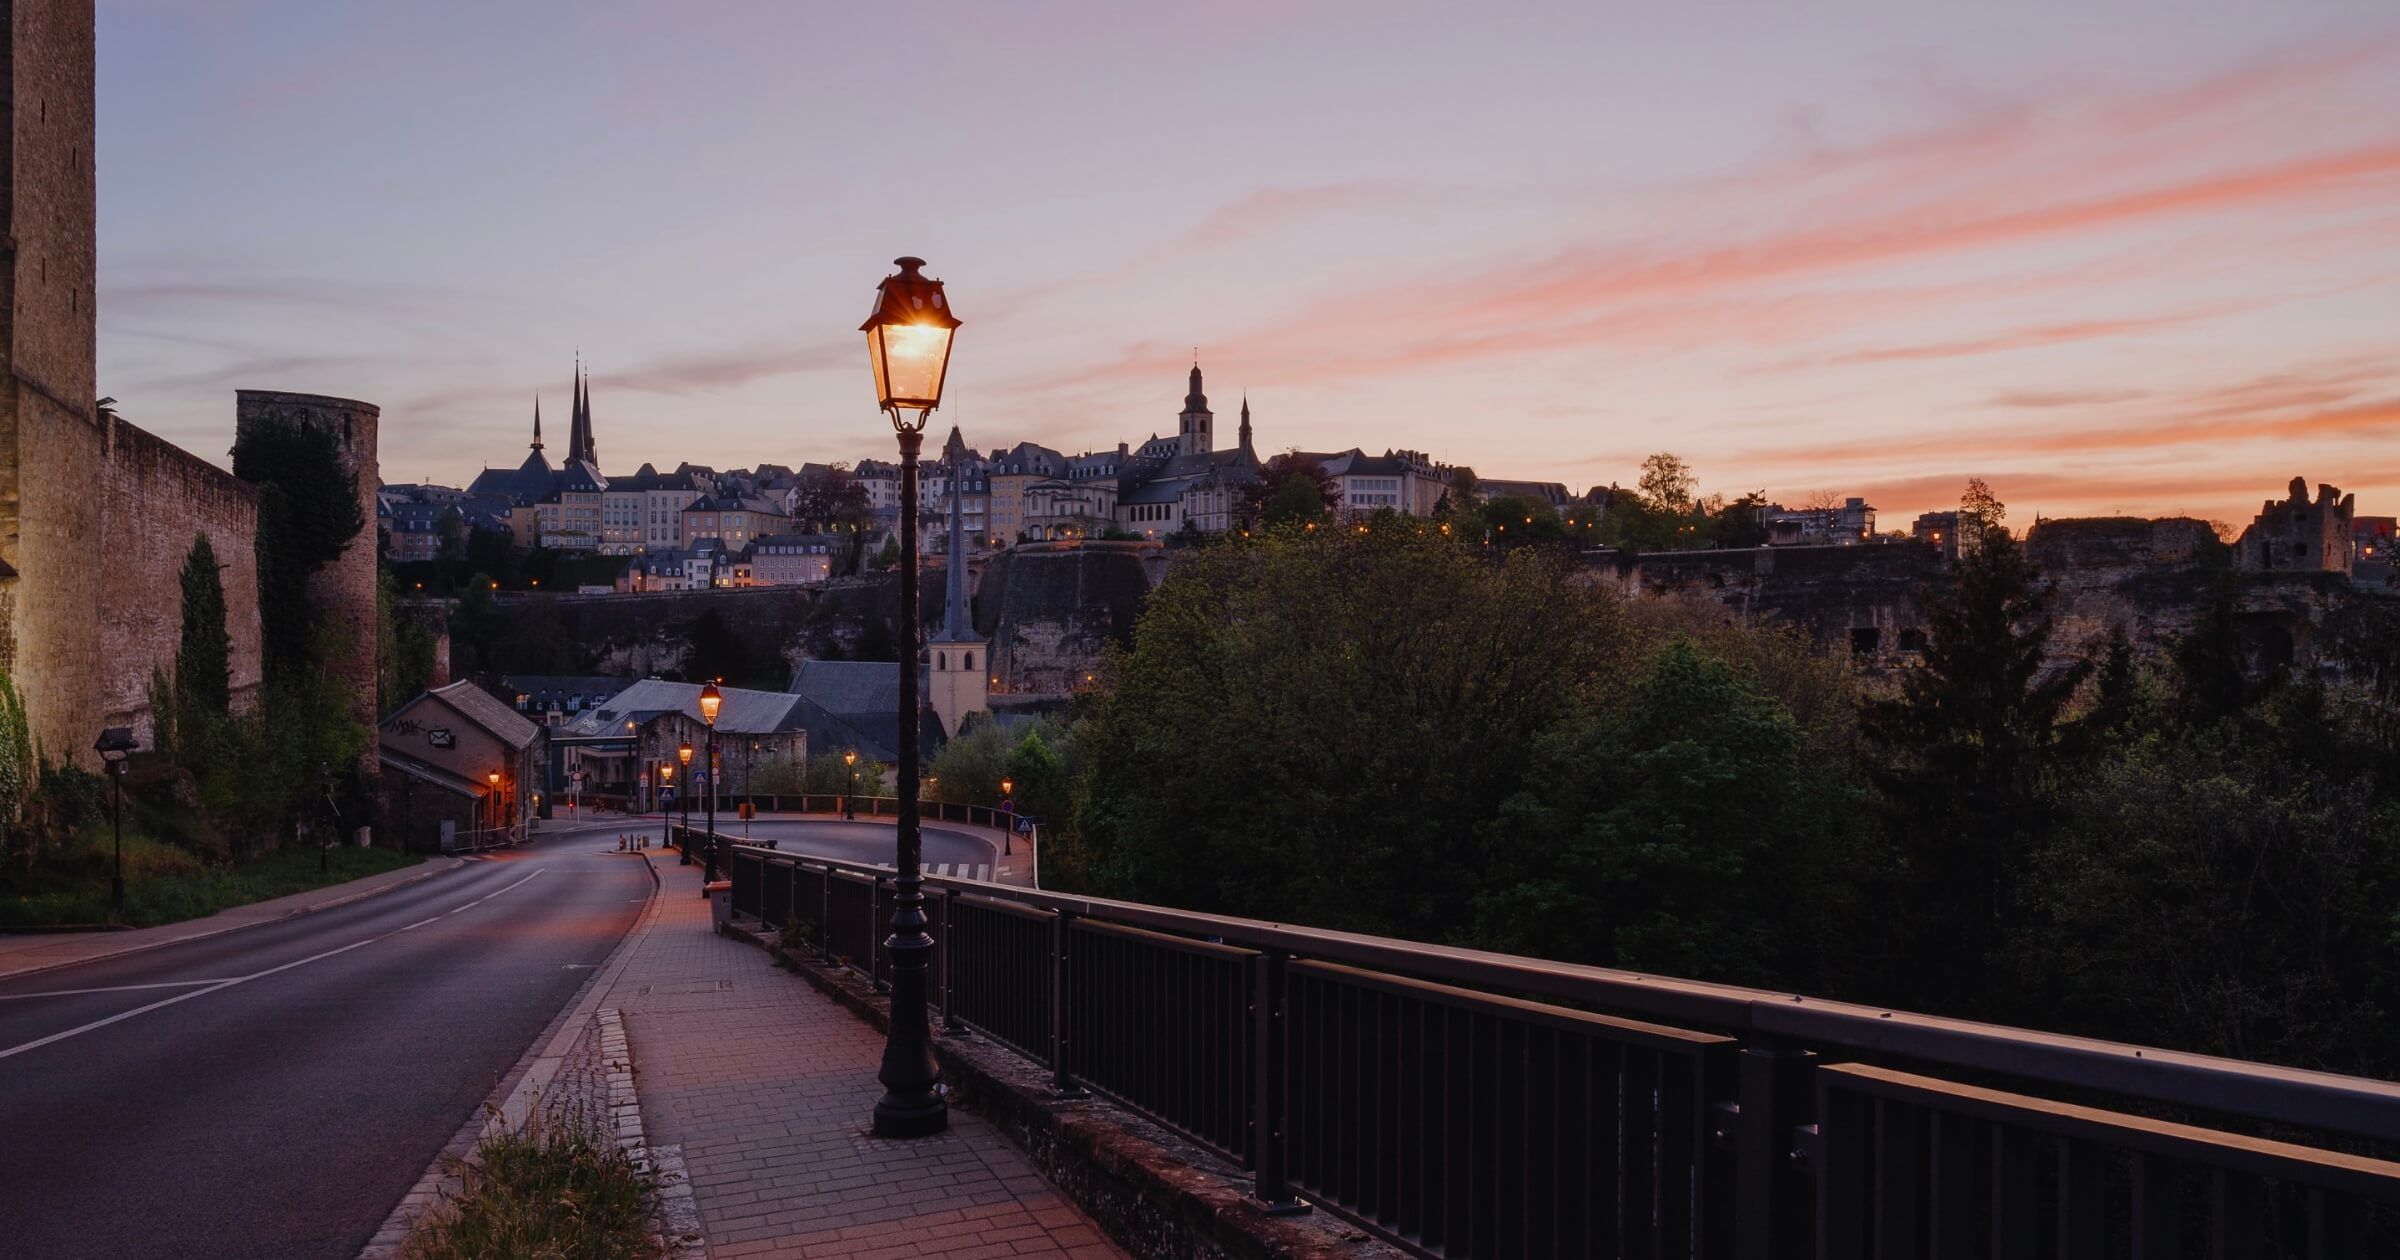 Luxembourg